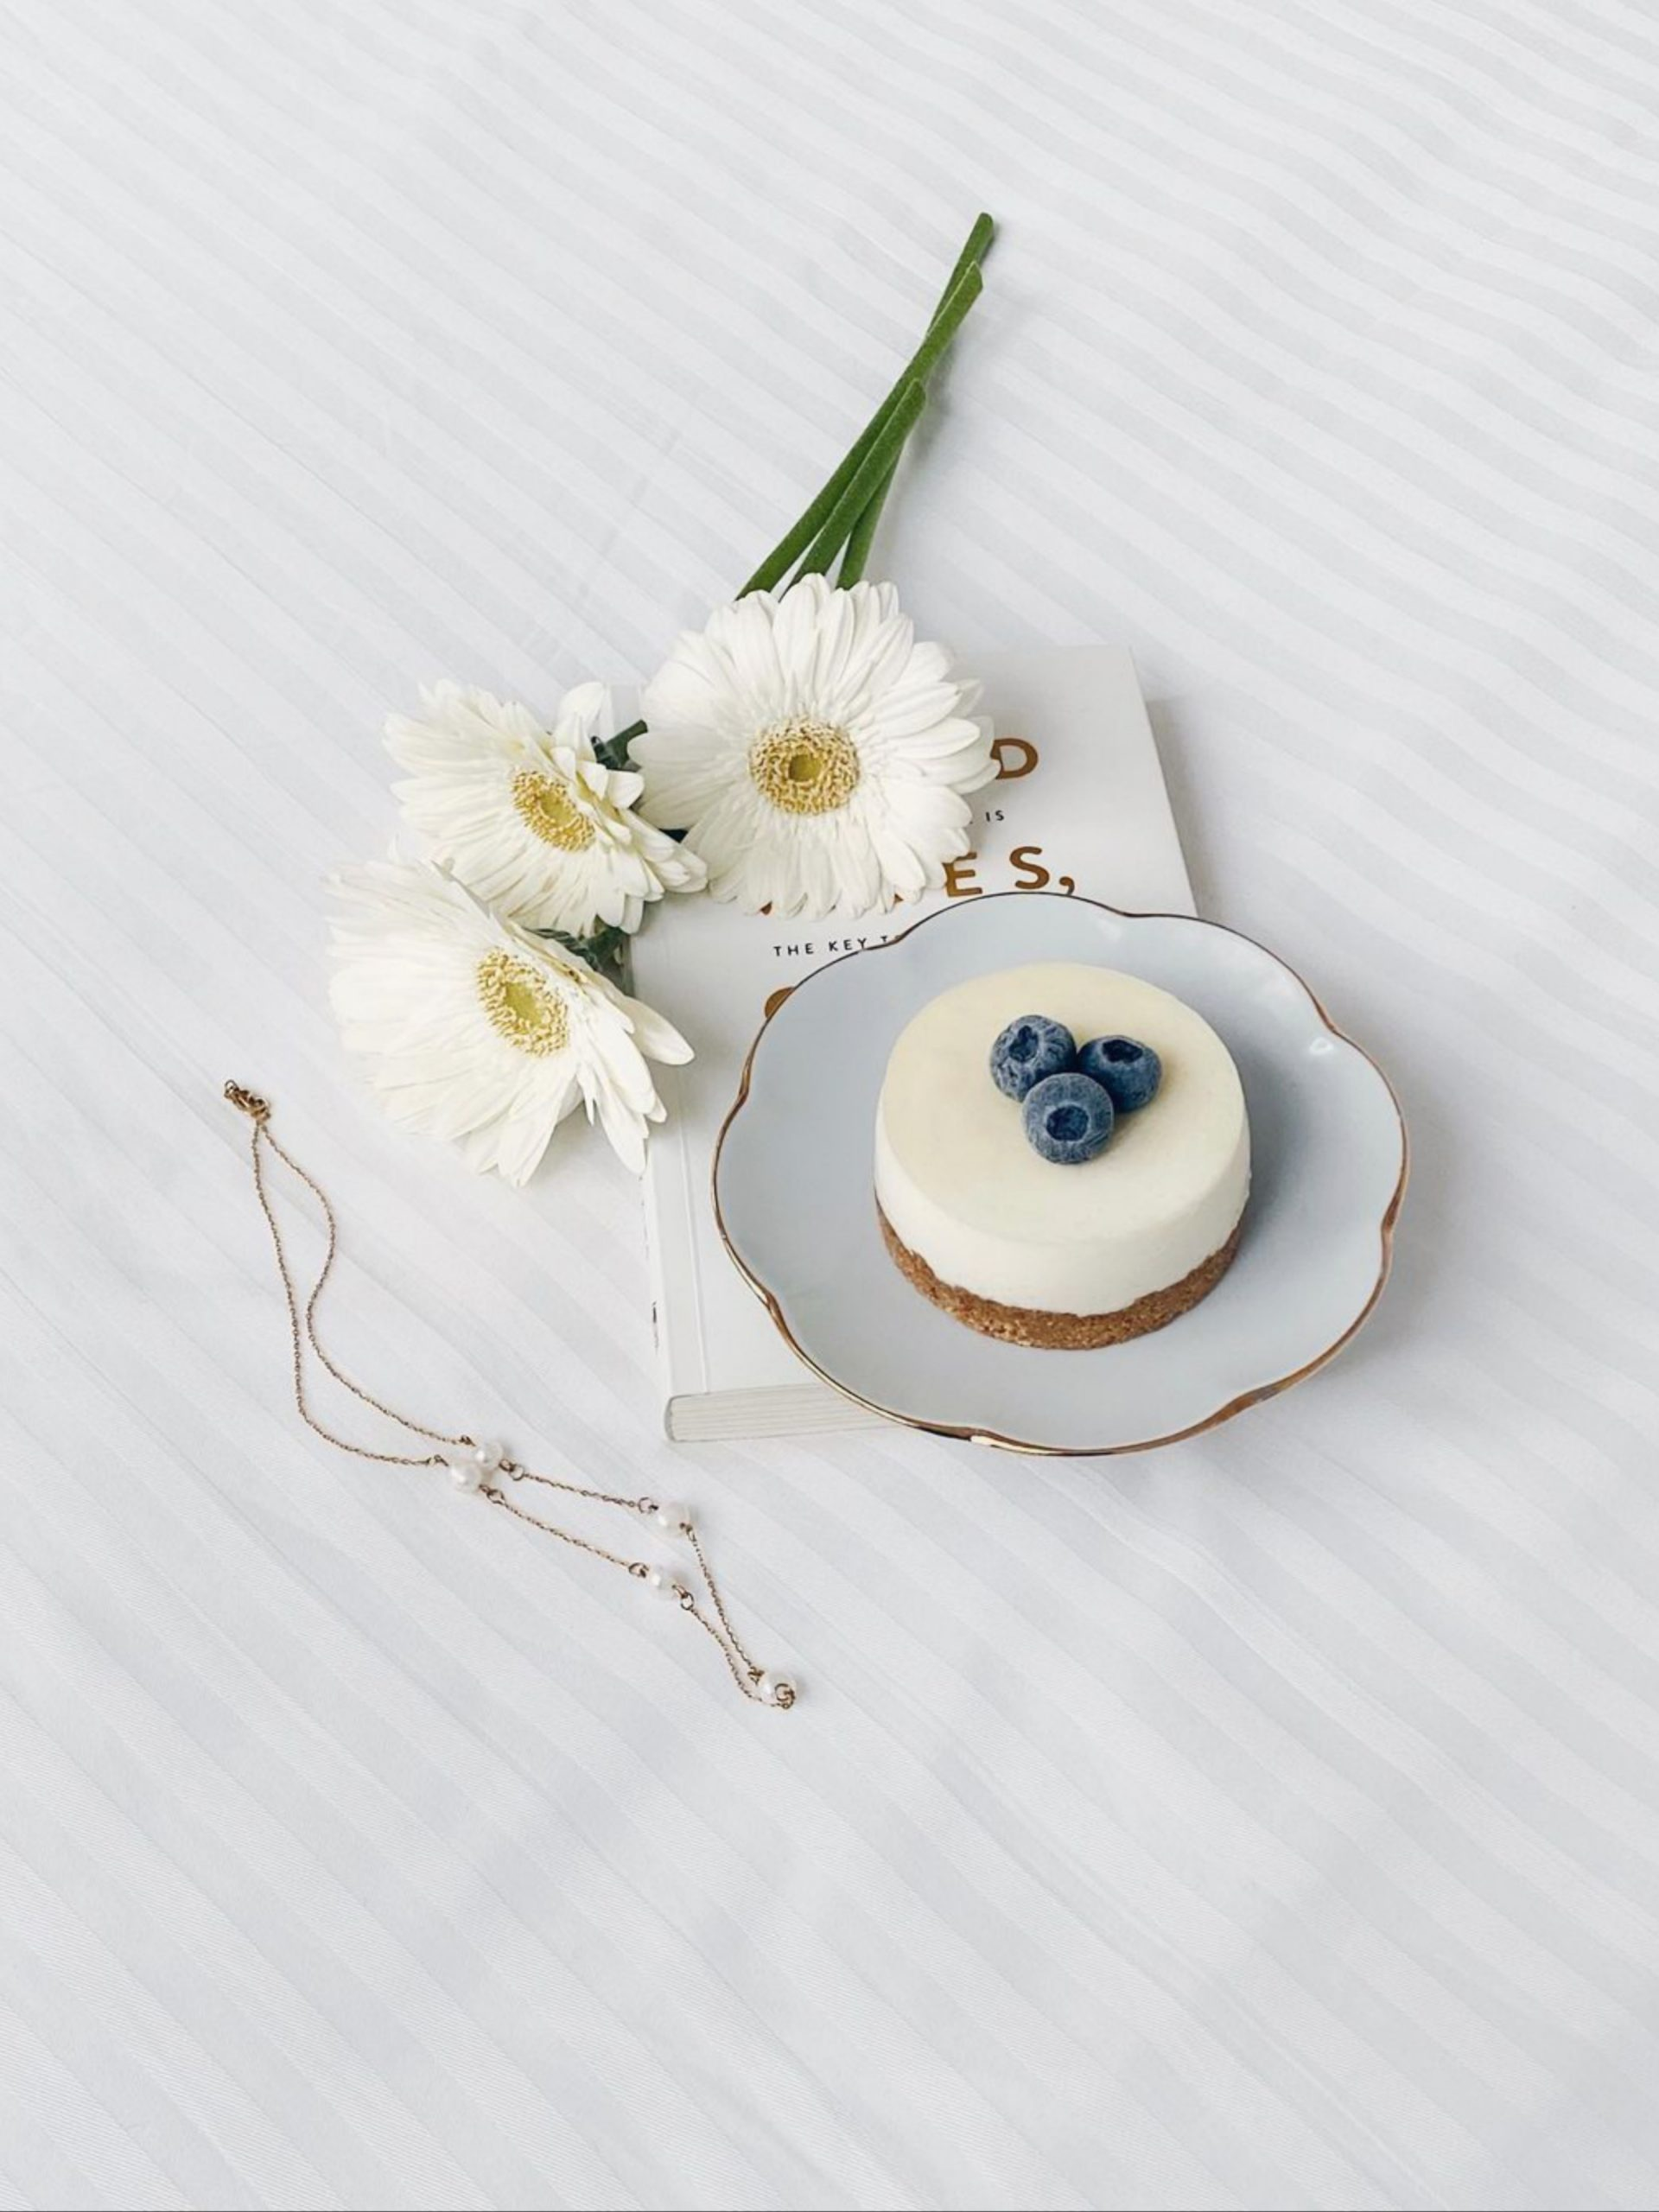 Food plate and cut flowers